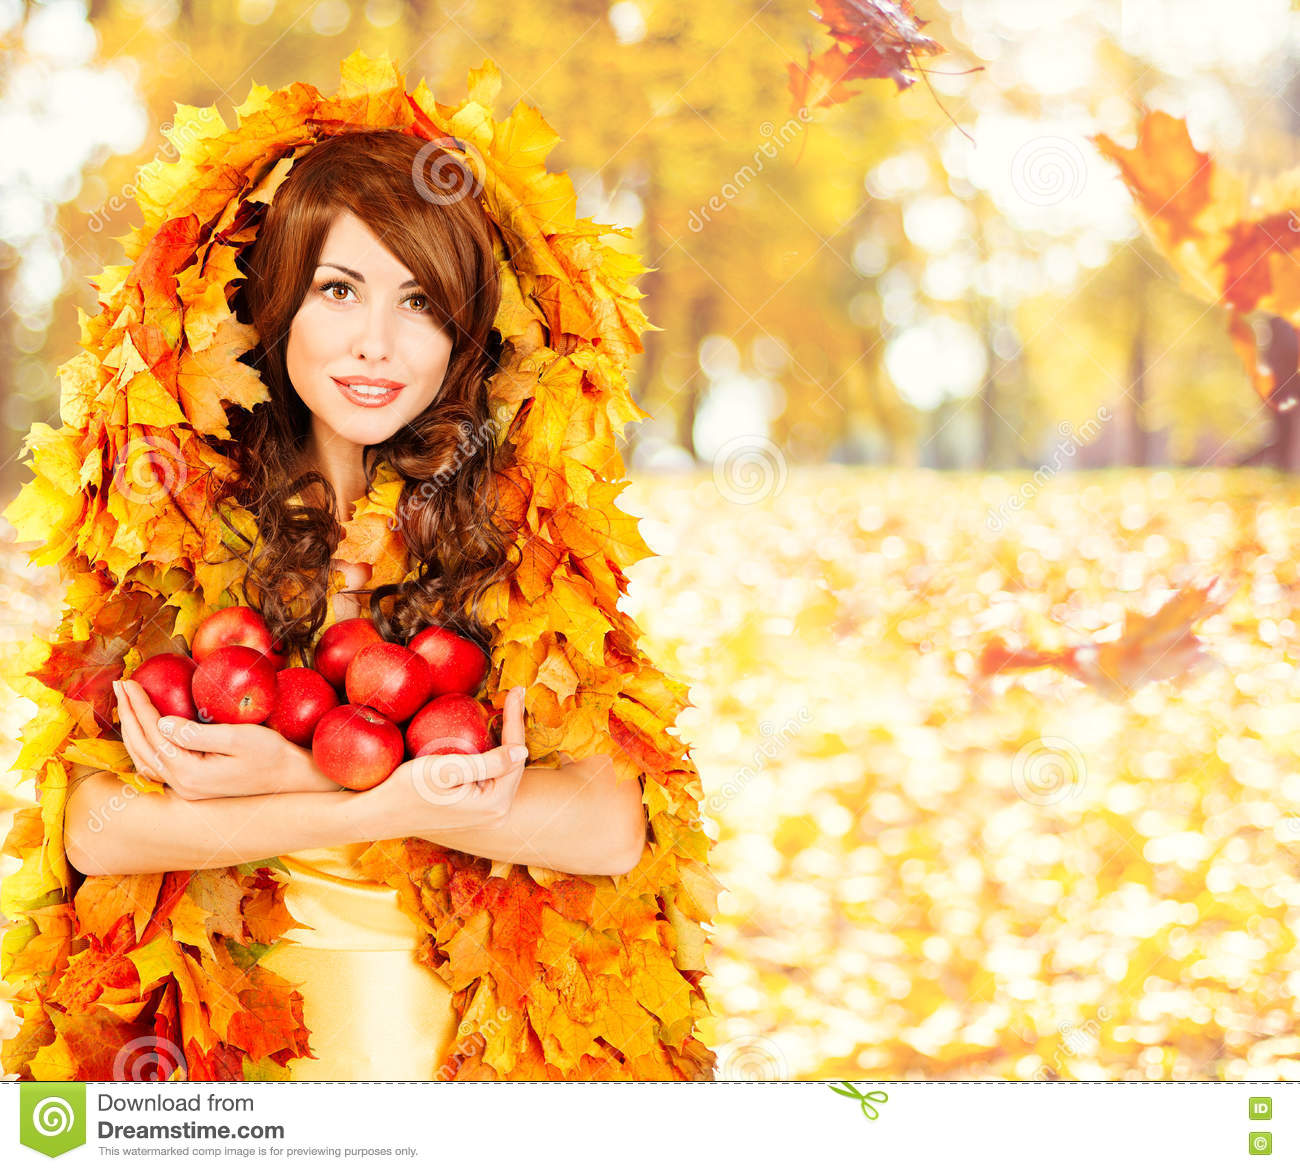 Autumn Apples, Fashion Woman Fruits Fall Leaves Clothes